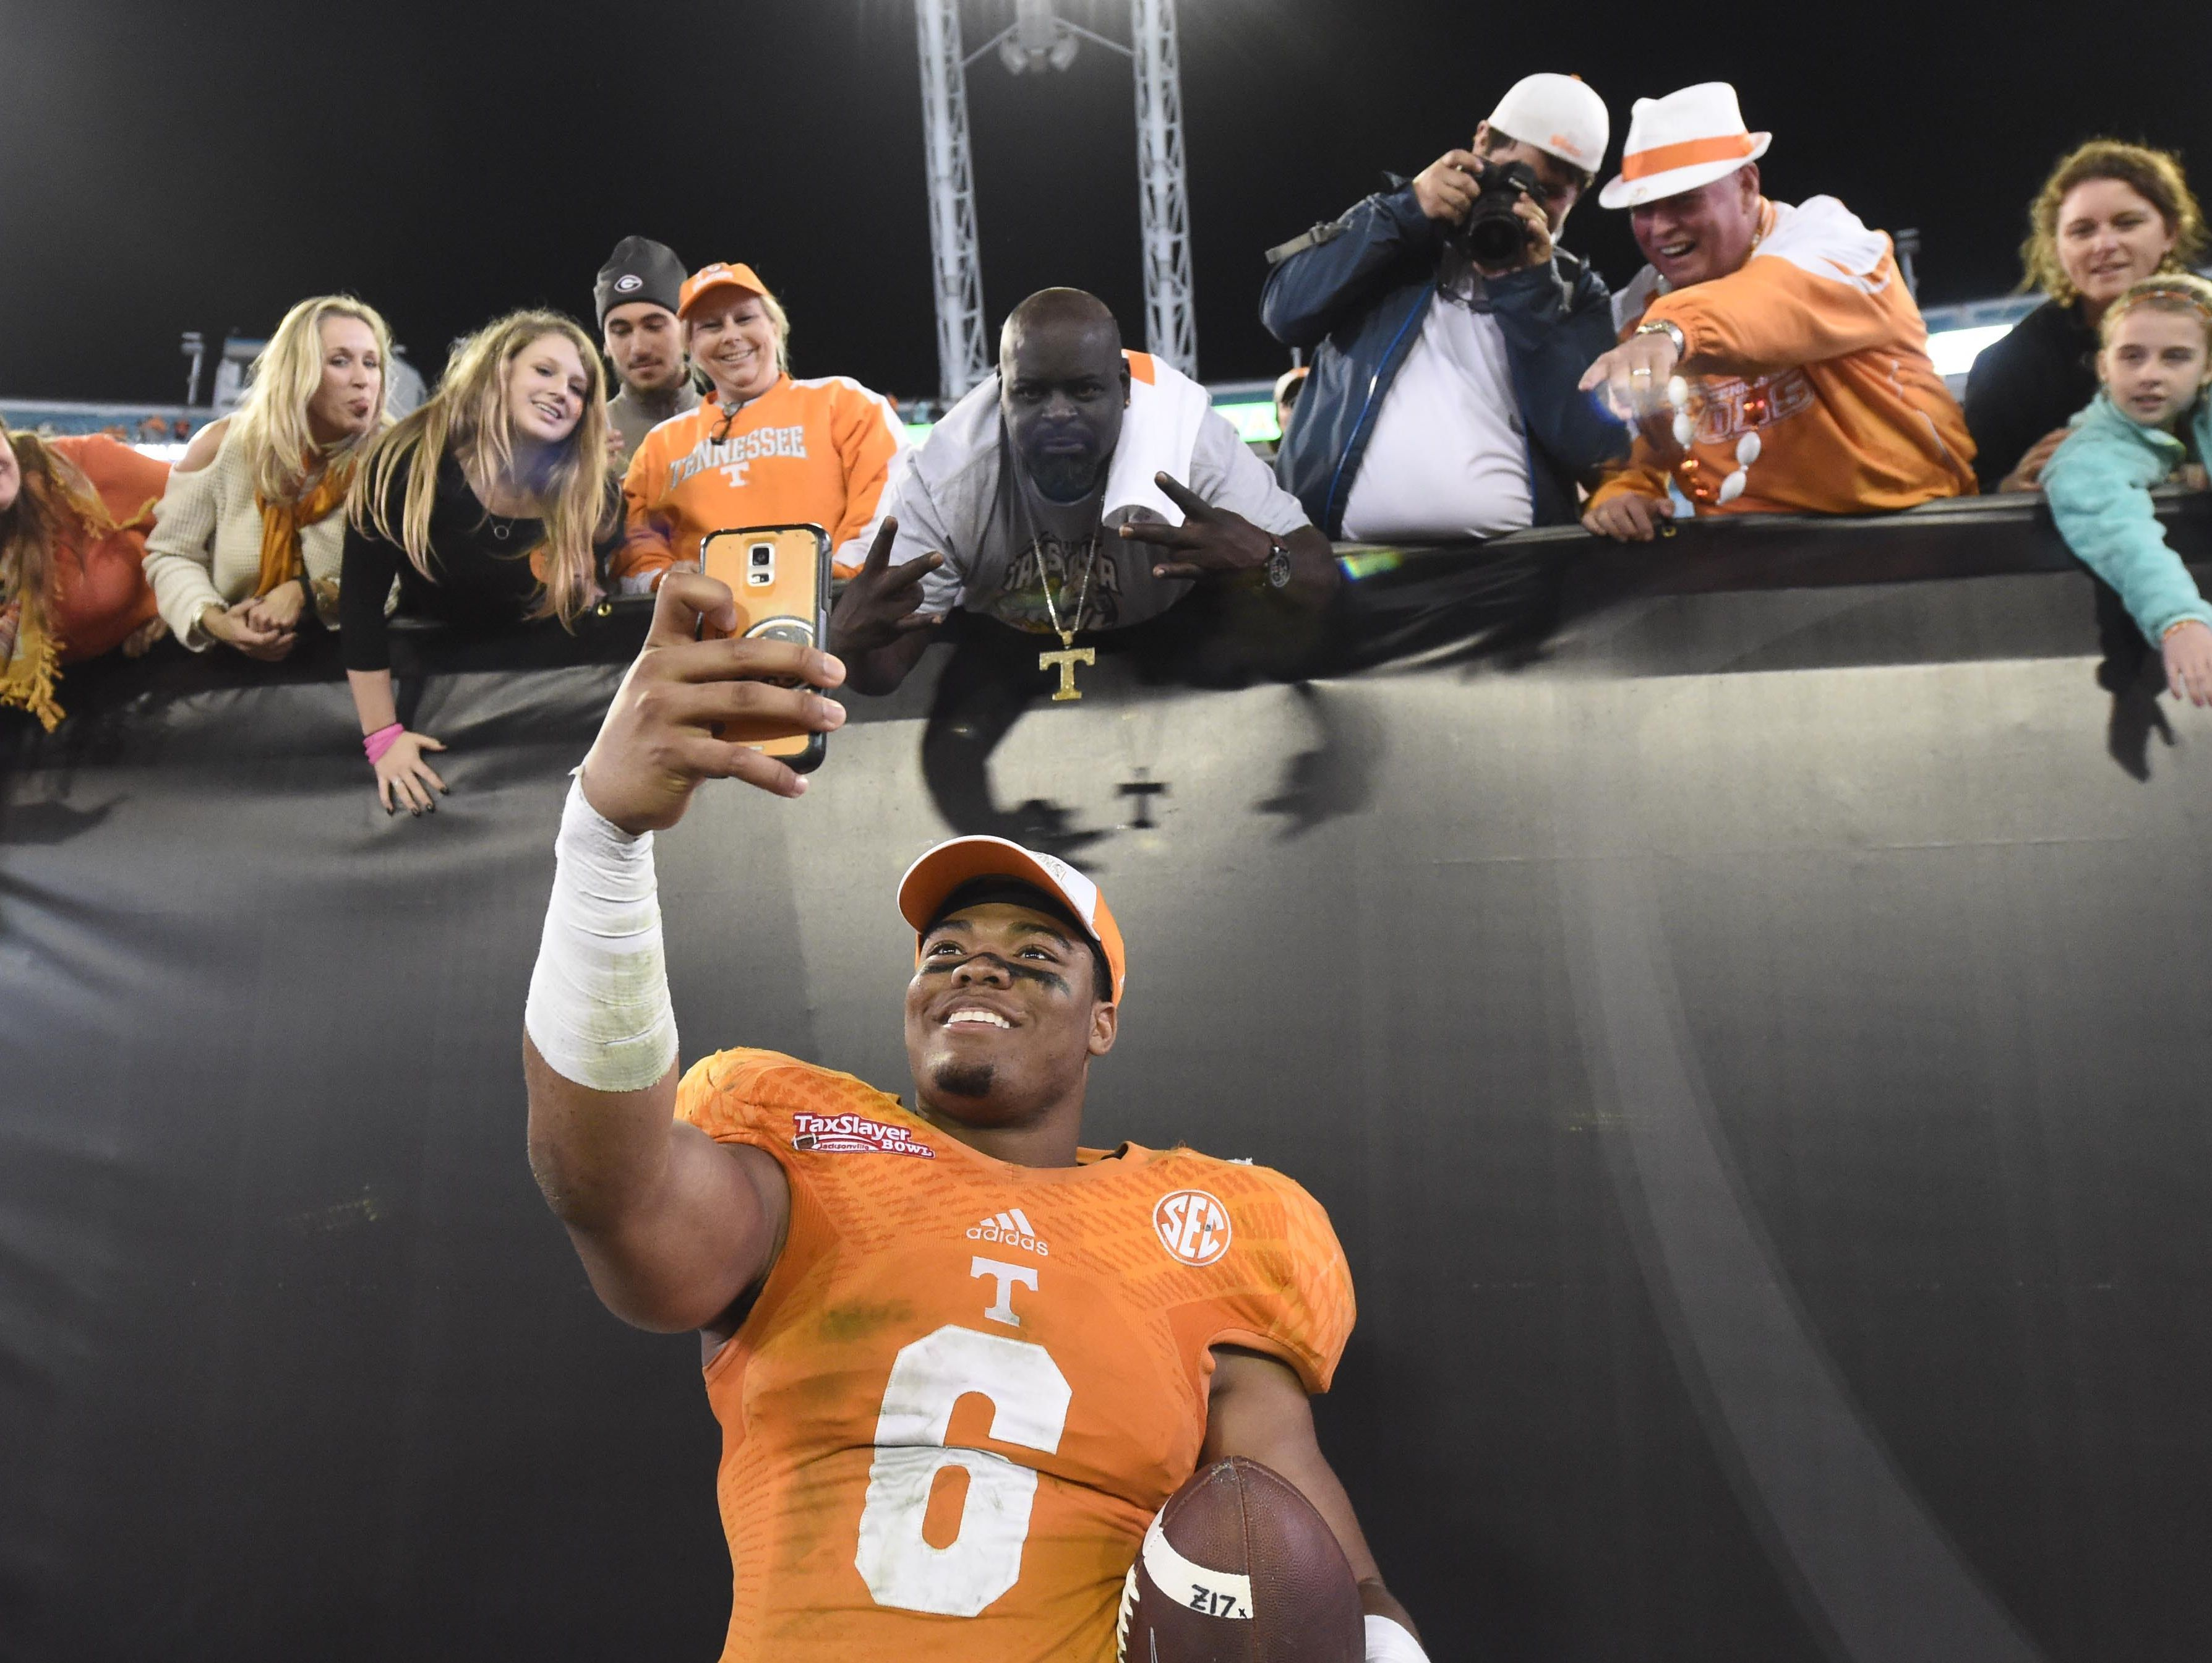 Tennessee defensive back Todd Kelly Jr. (6) obliges a fan's request to take a selfie with his smartphone following Tennessee's 45-28 victory over Iowa in the Taxslayer Bowl at EverBank Field on Friday, Jan. 2, 2015 in Jacksonville, Fla.